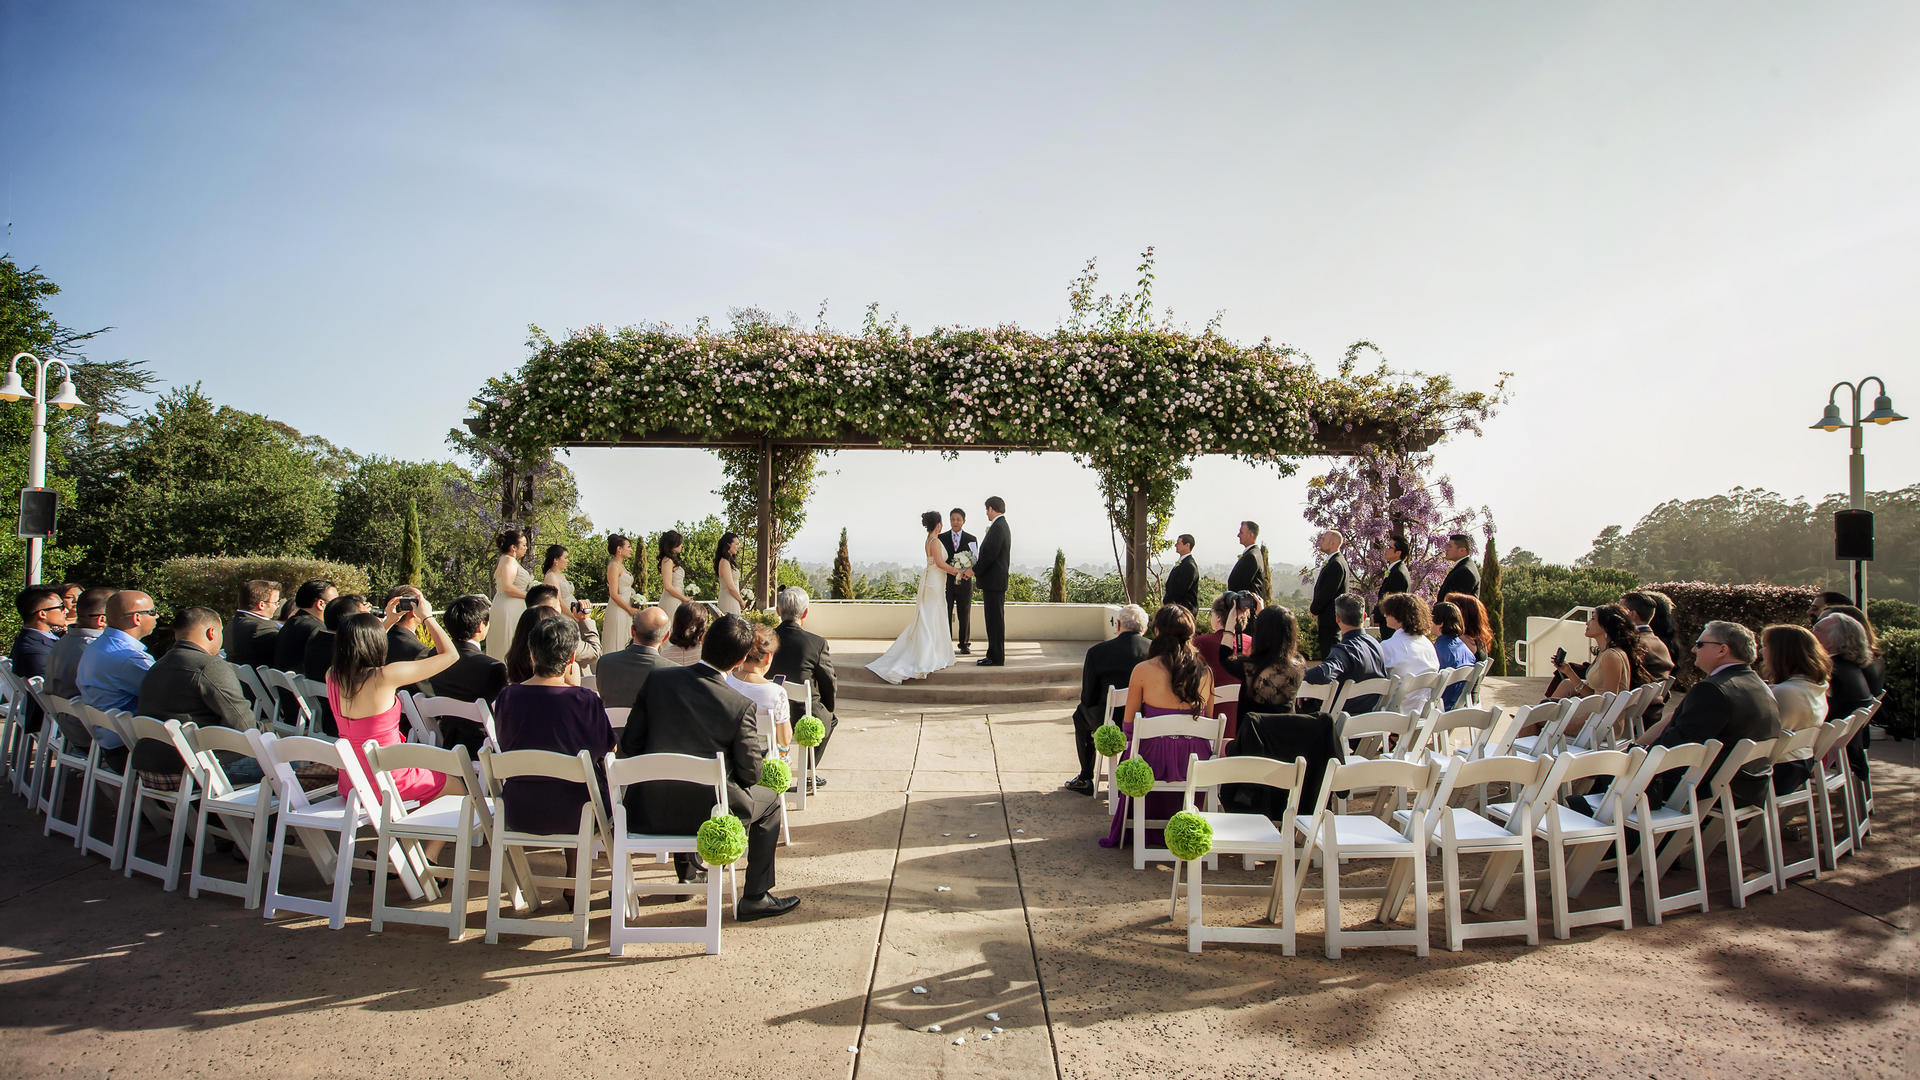 Outdoor Wedding at Chaminade Resort & Spa in Santa Cruz, CA